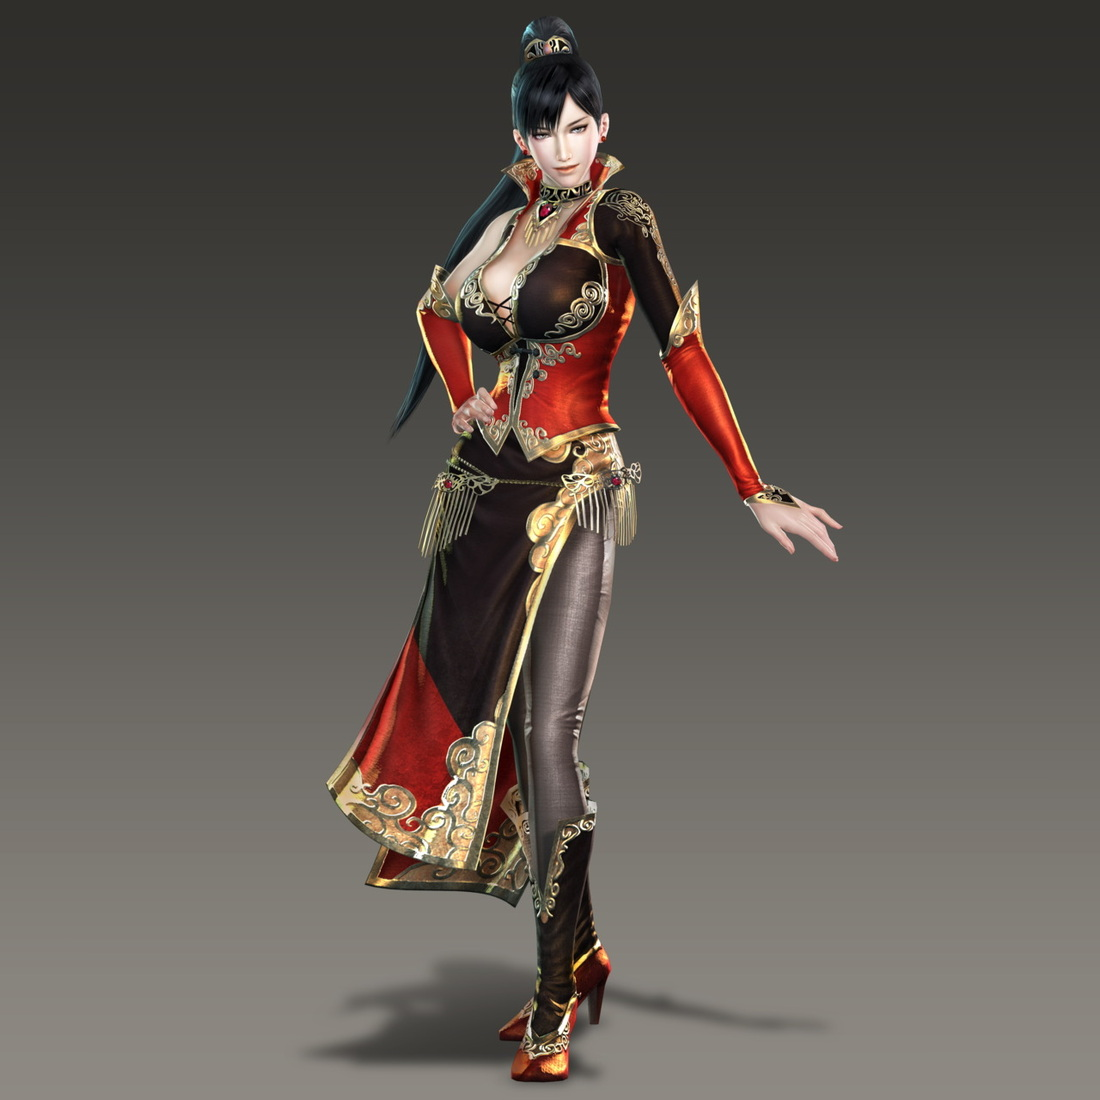 Pretty Outfits...in Video Games - Hello from Dynasty Warriors 6 Sun Shang Xiang